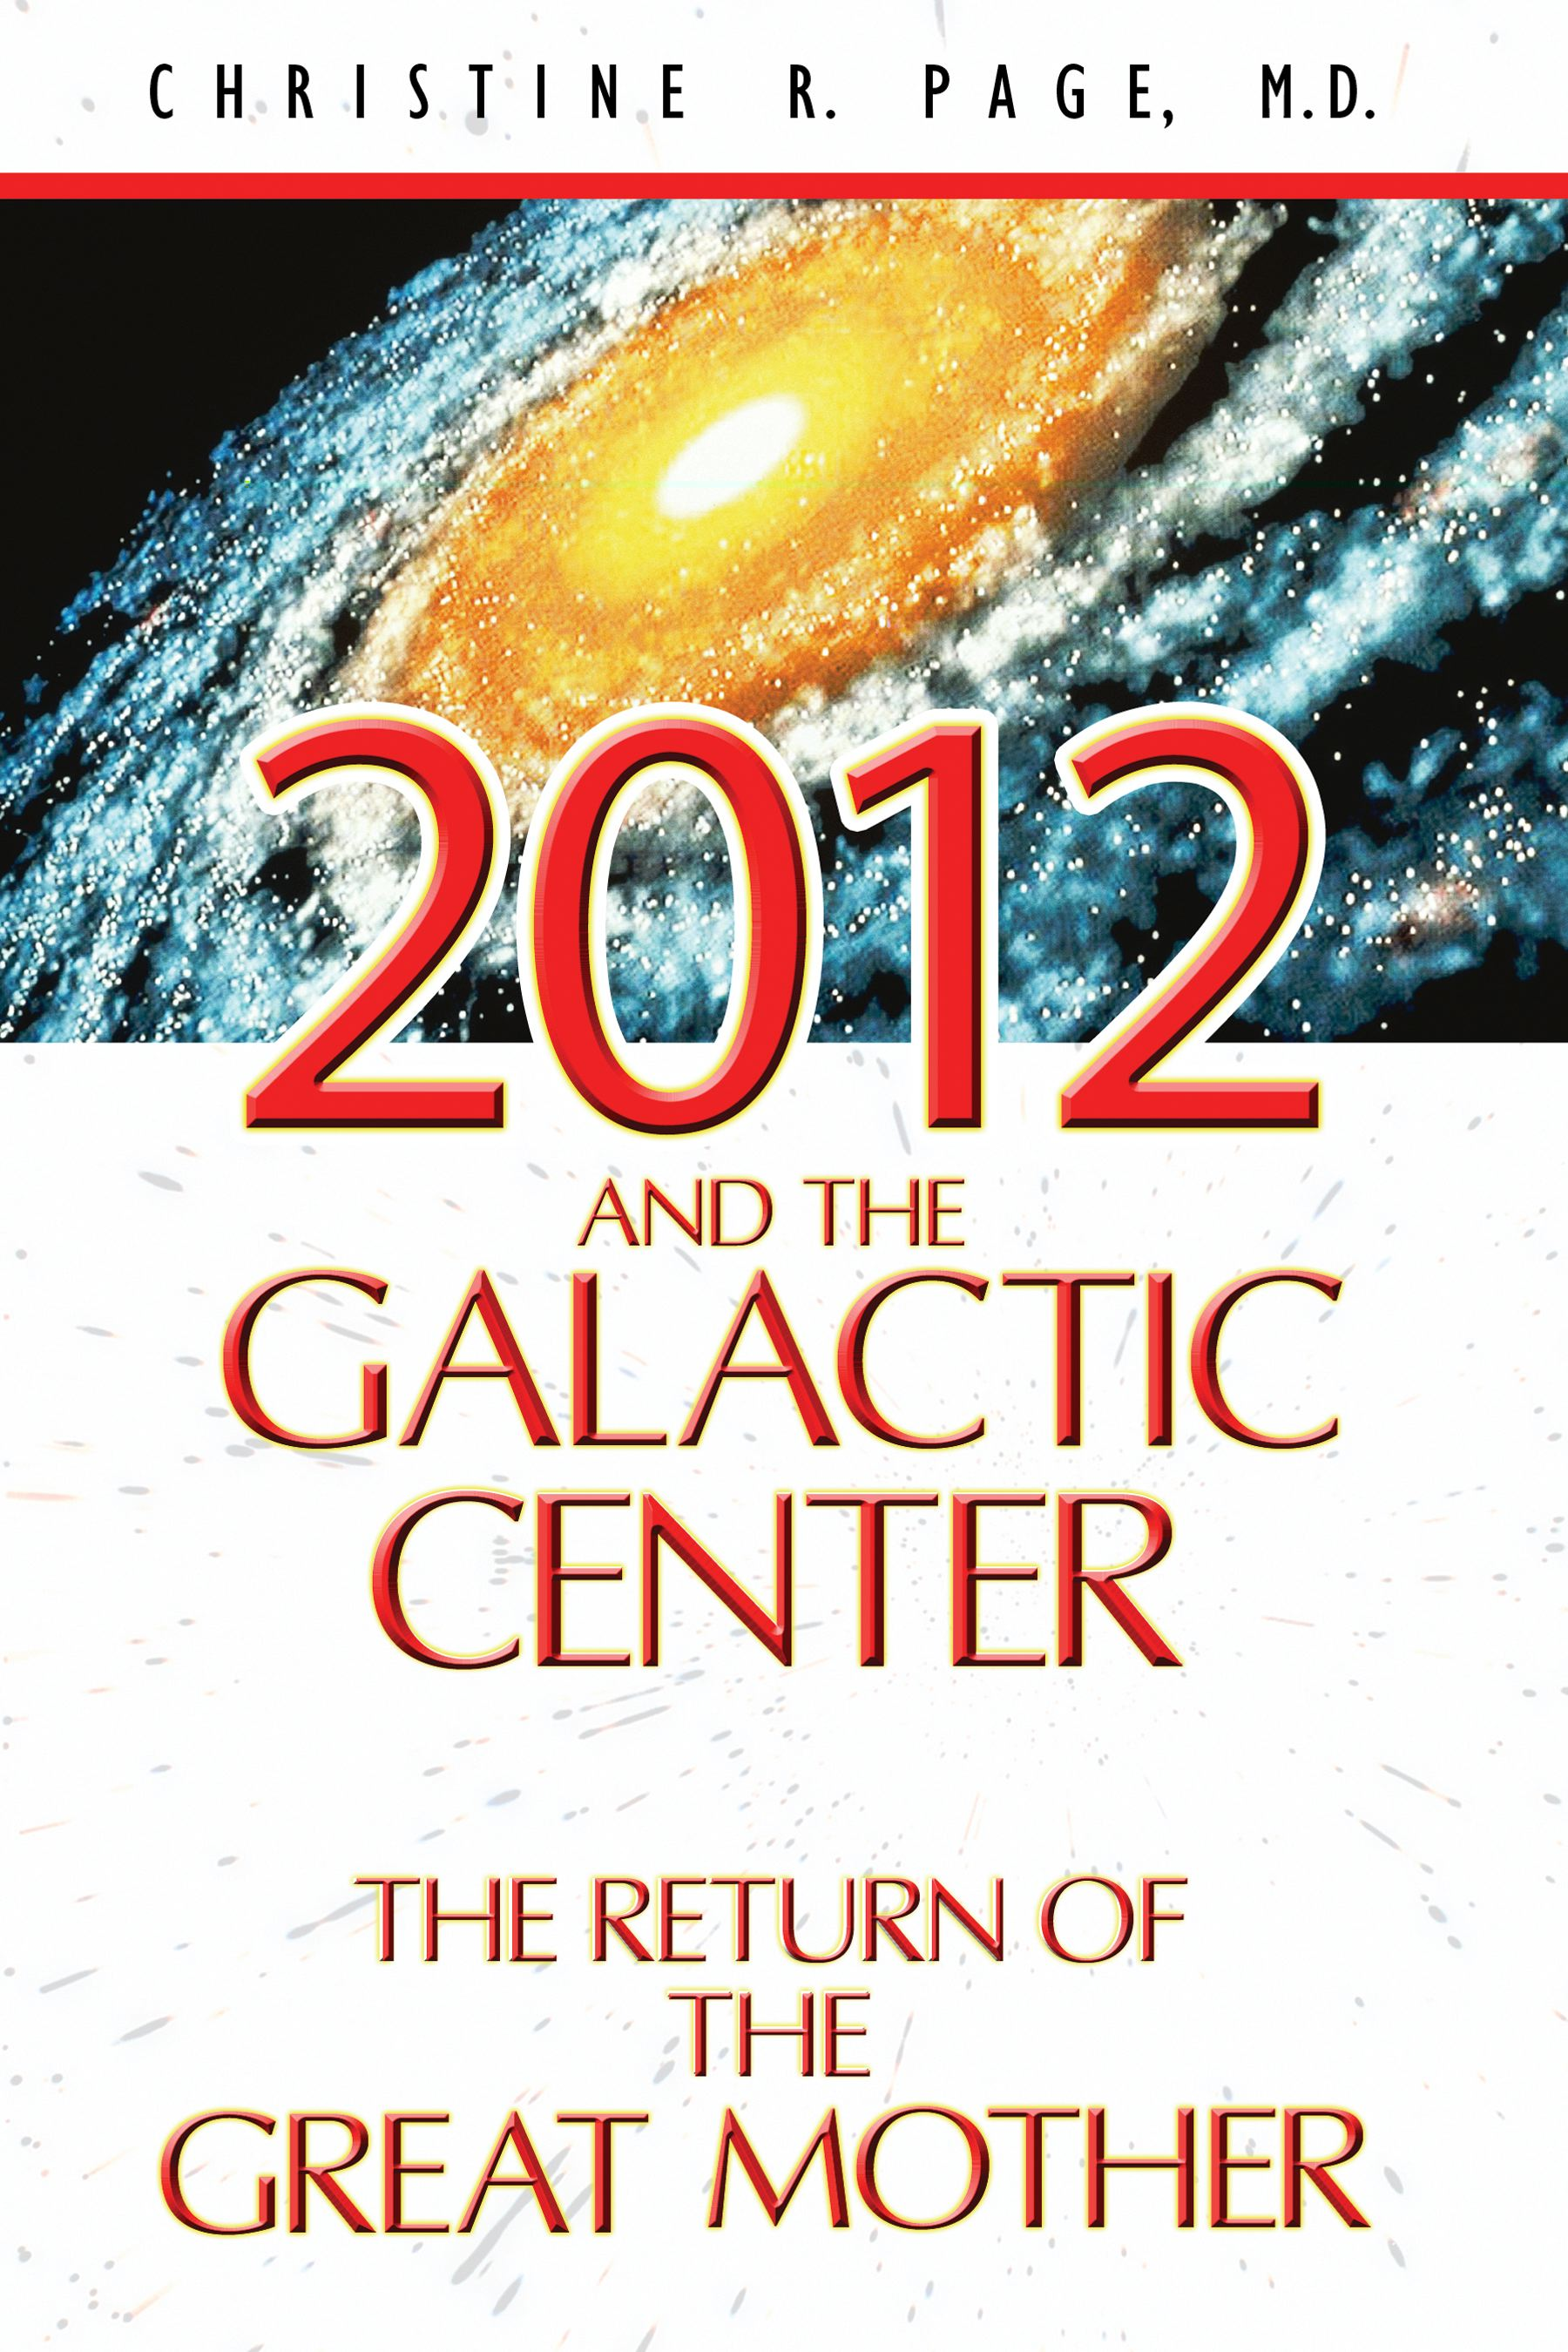 2012-and-the-galactic-center-9781591430865_hr